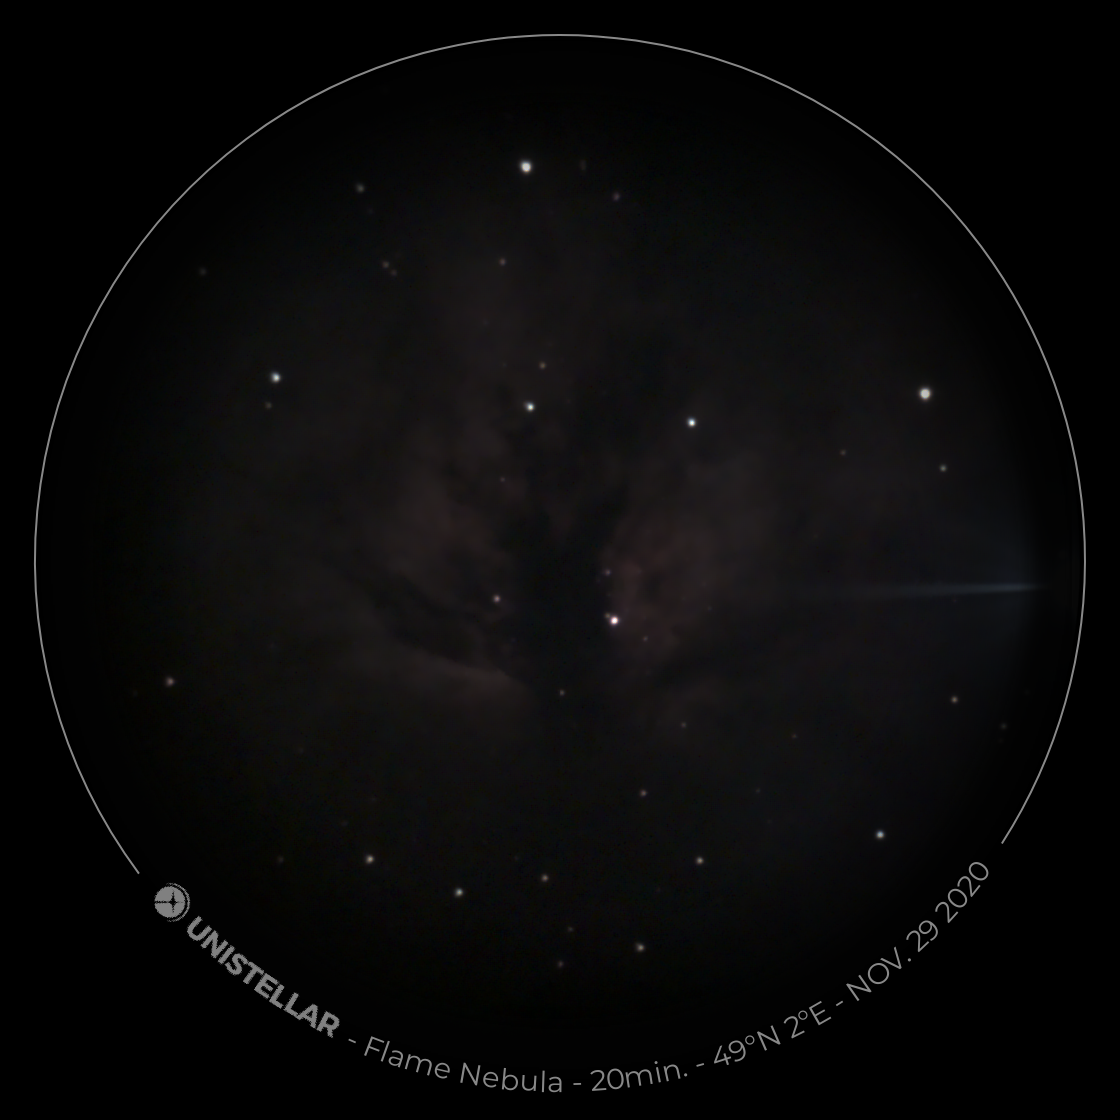 eVscope-20201129-002327.png